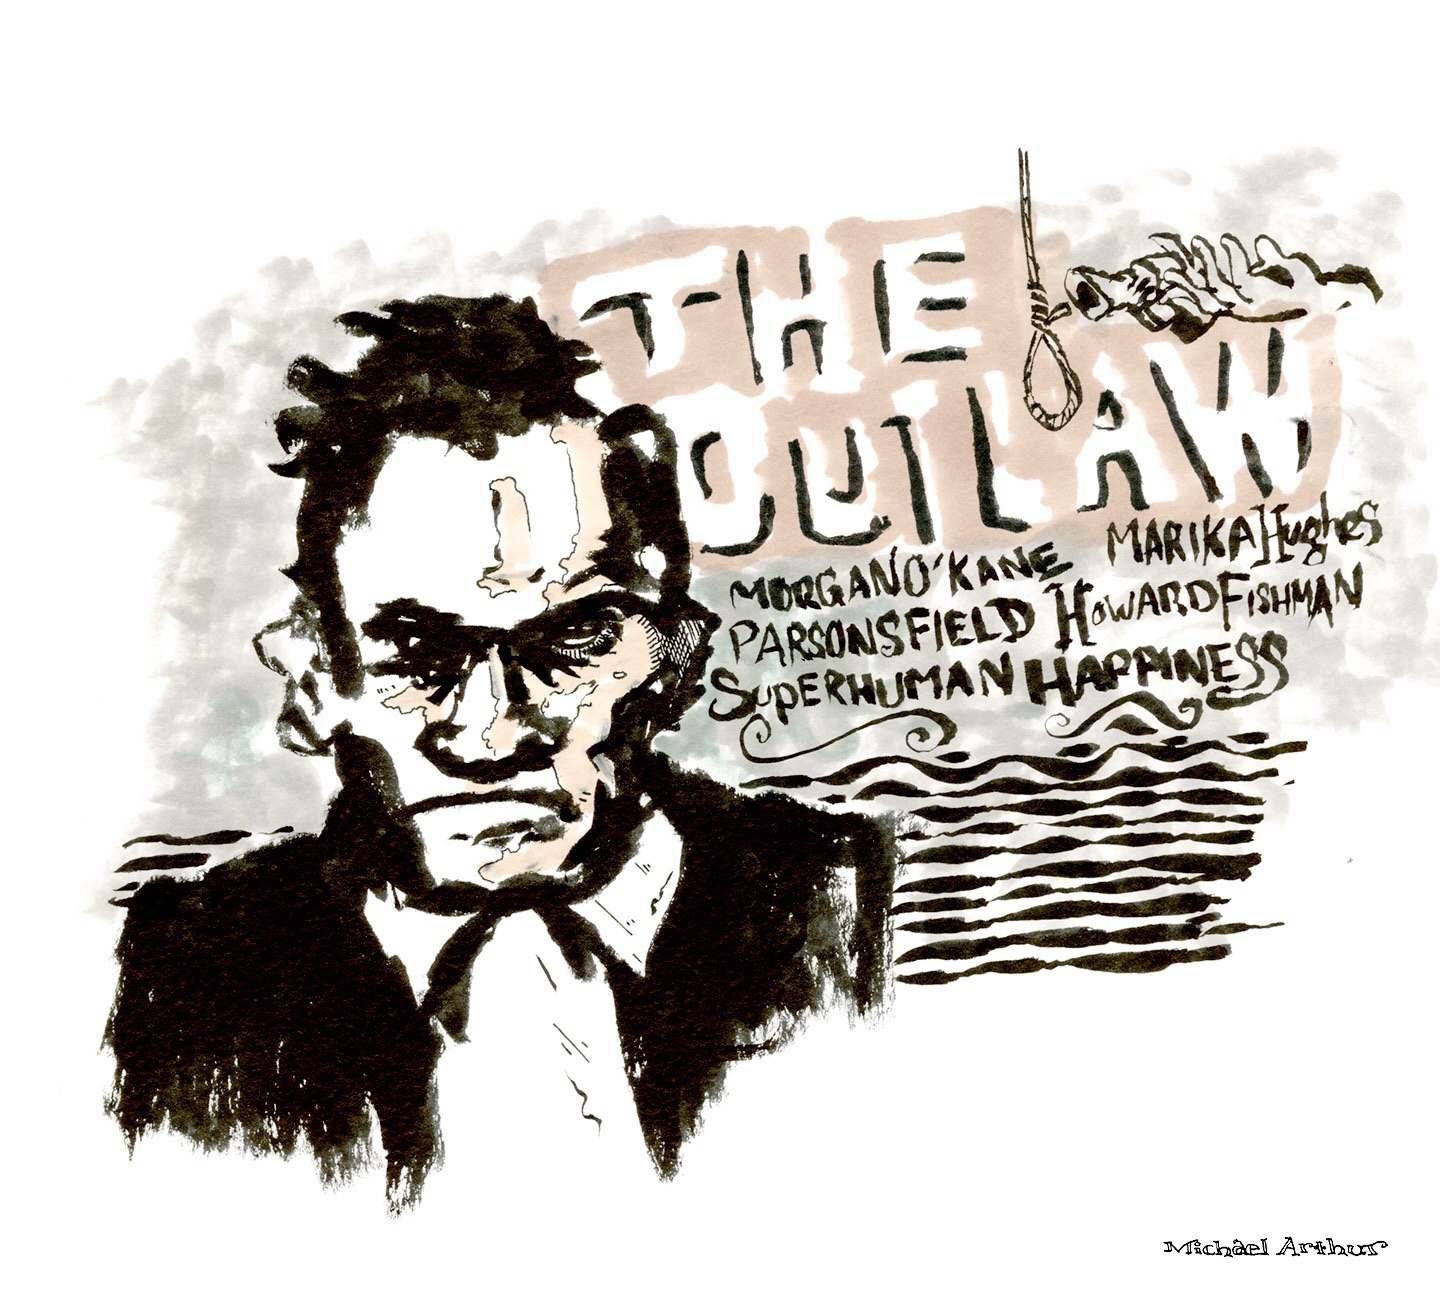 Part Two: The Outlaw....